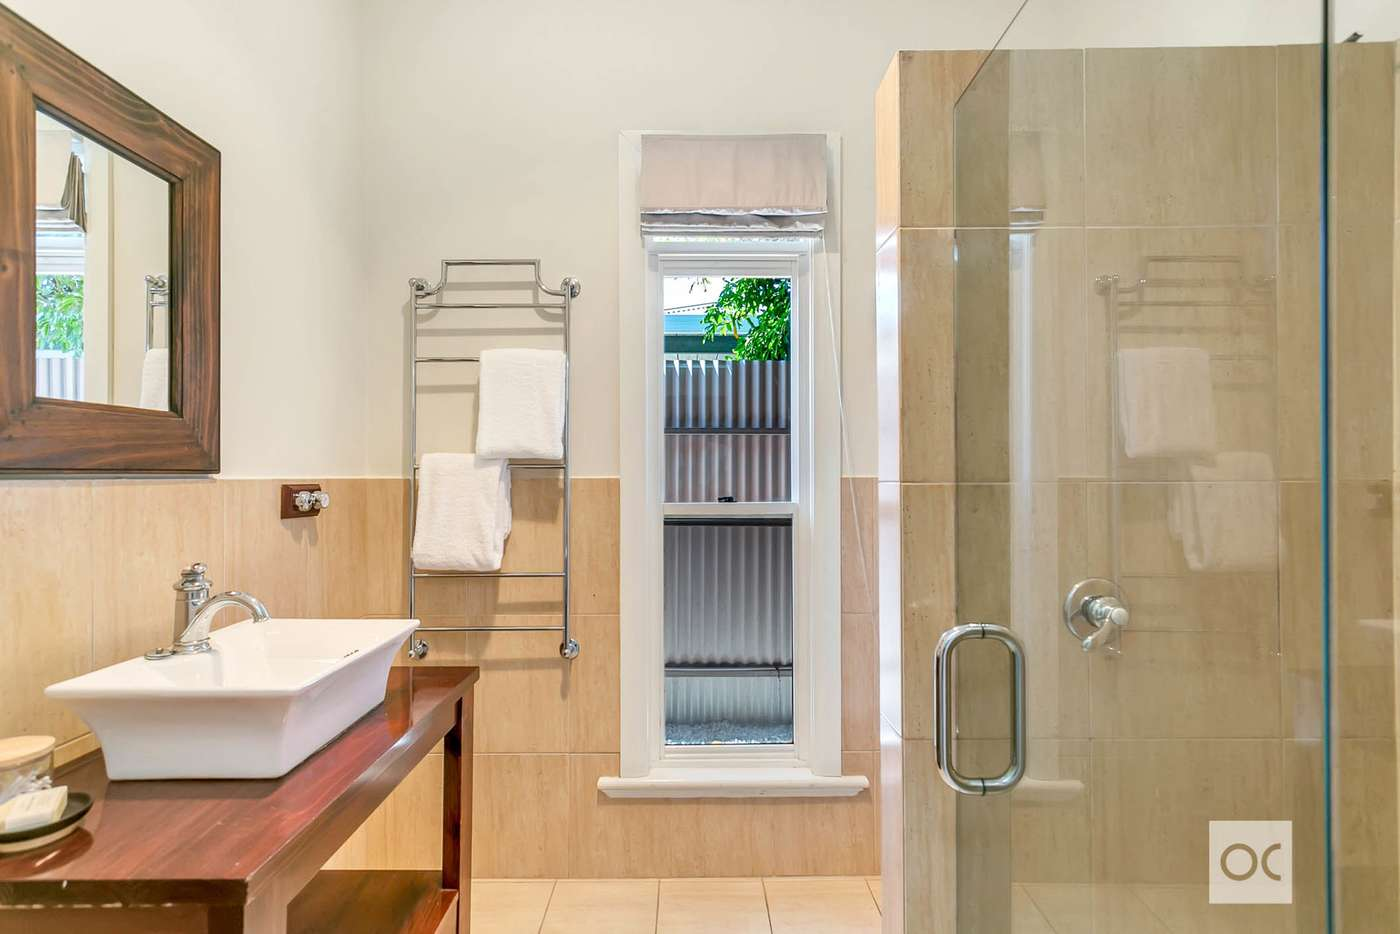 Sixth view of Homely house listing, 54 Penang Avenue, Colonel Light Gardens SA 5041